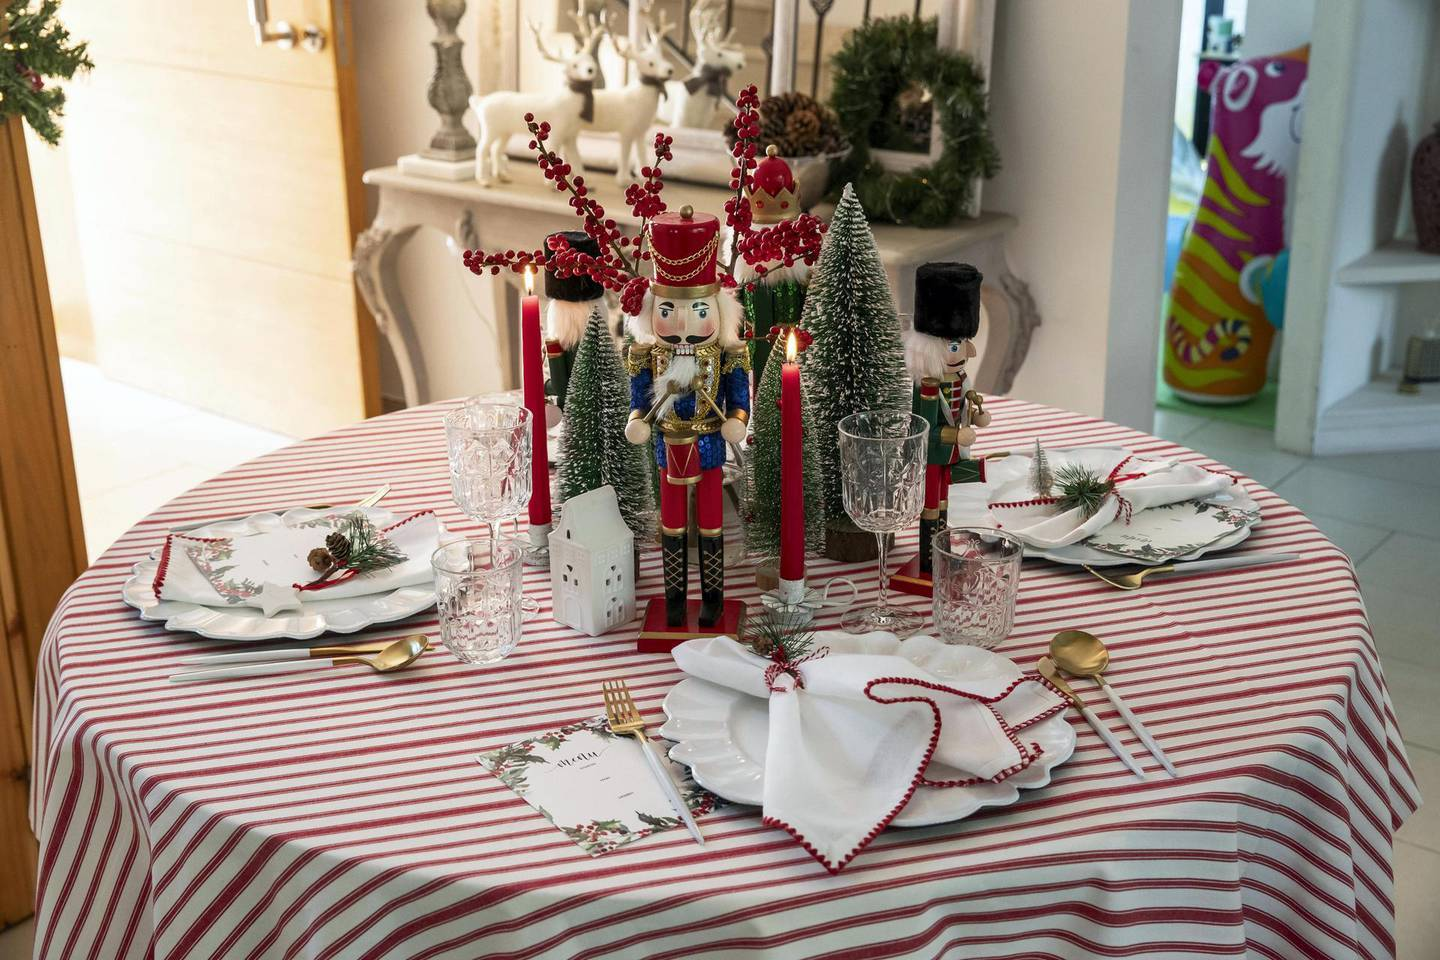 DUBAI UNITED ARAB EMIRATES. 25 NOVEMBER 2020. Tablescaping, the art of setting a table explained. Table settings for the festive season by Katie watson Grant, Founder of Lavender & May. (Photo: Antonie Robertson/The National) Journalist: Janice Rodrigues Section: National.